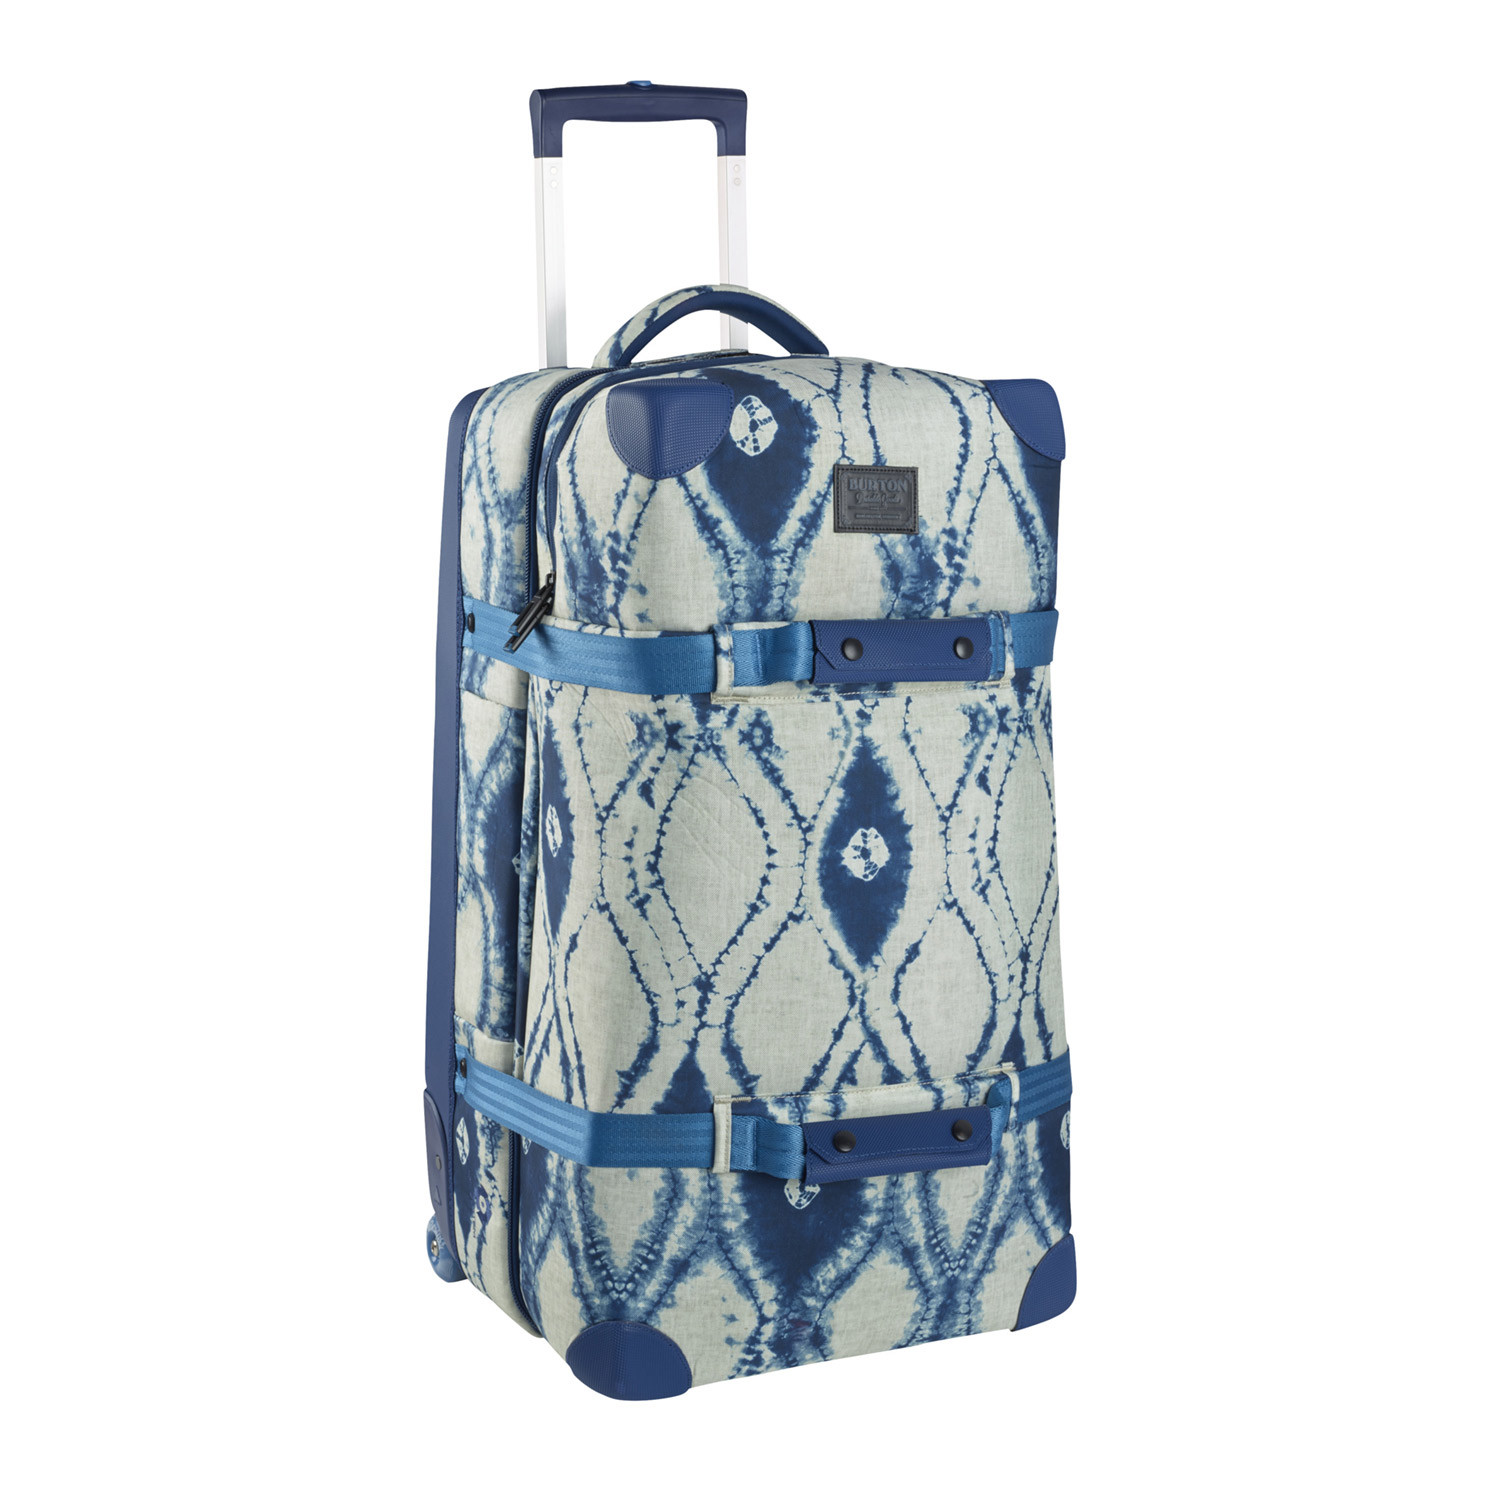 Wheelie Double Deck Travel Bag (Blue + White) - Burton Snowboards ... 3cb97b25ff351